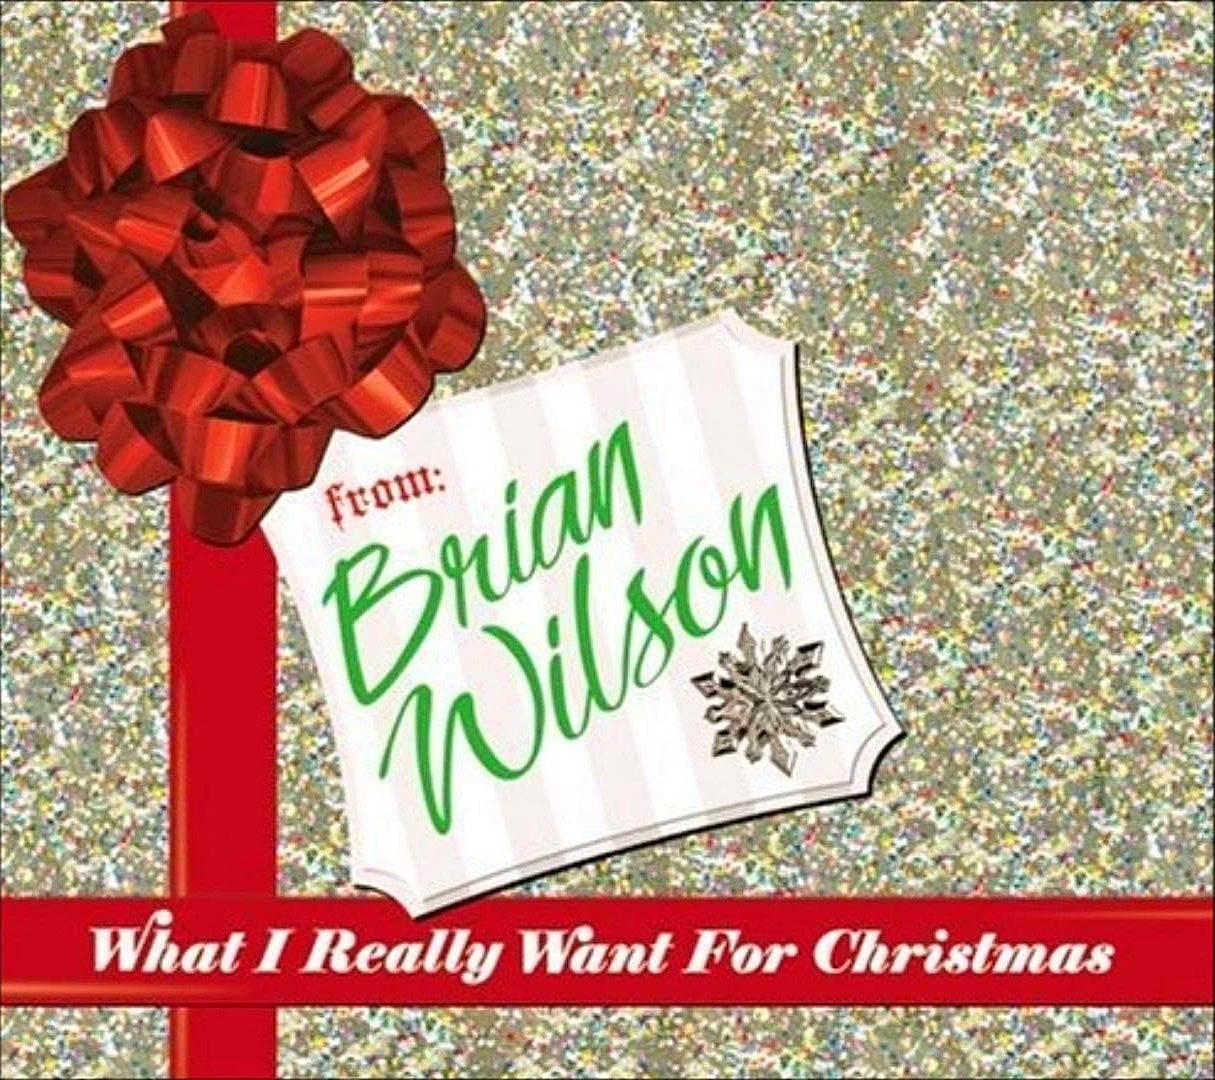 What I Really Want For Christmas cover